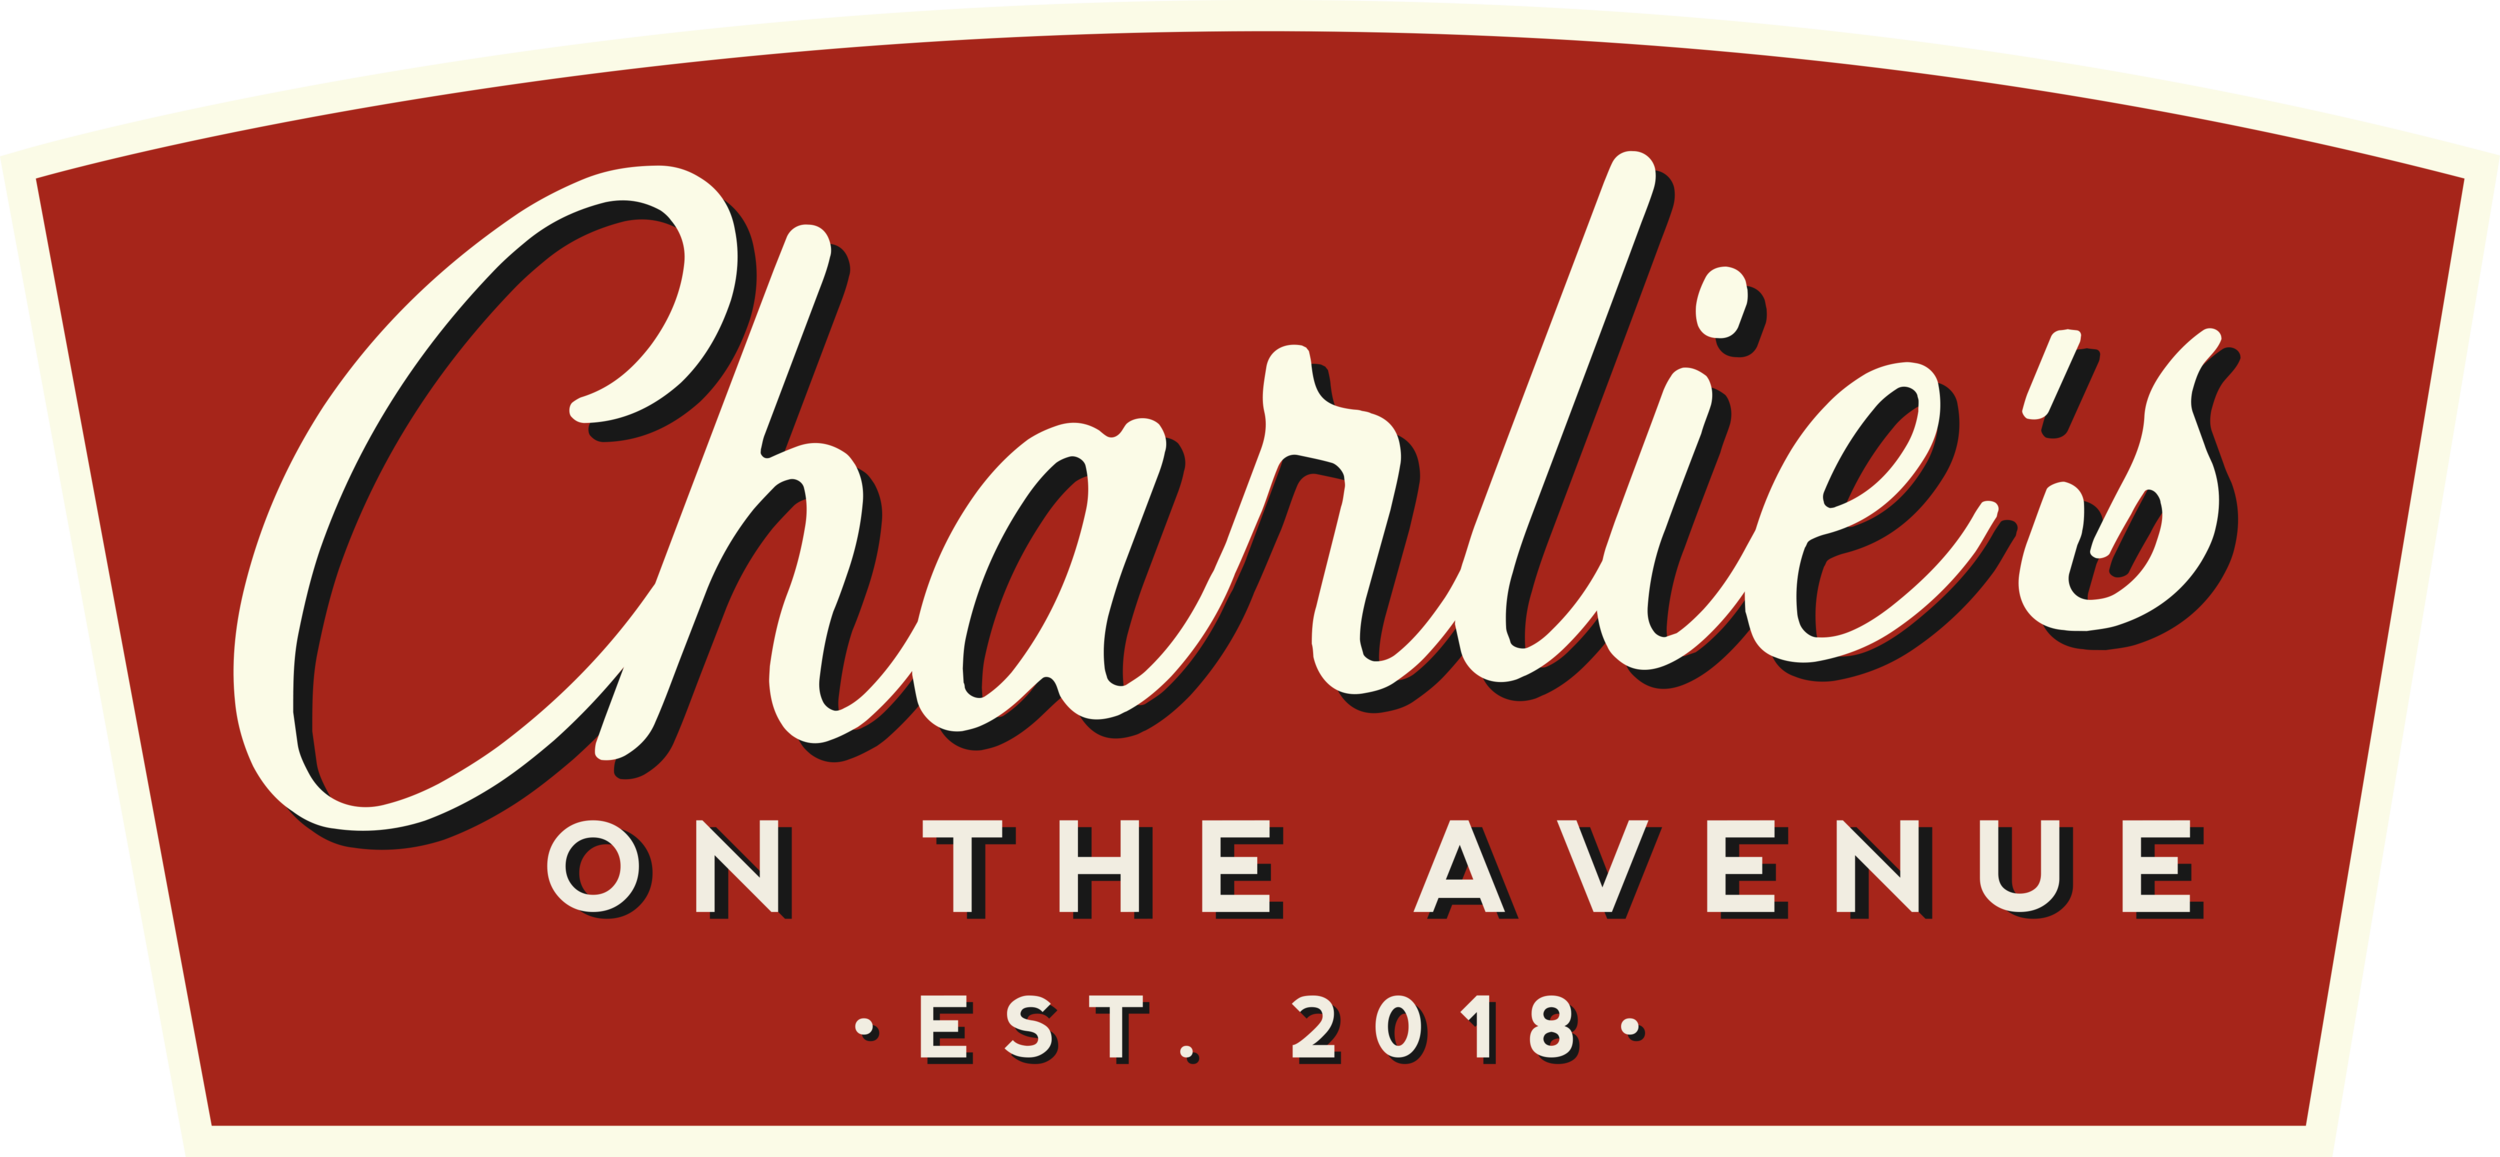 CHARLIES_COLOR_TRANSPARENT (1).png